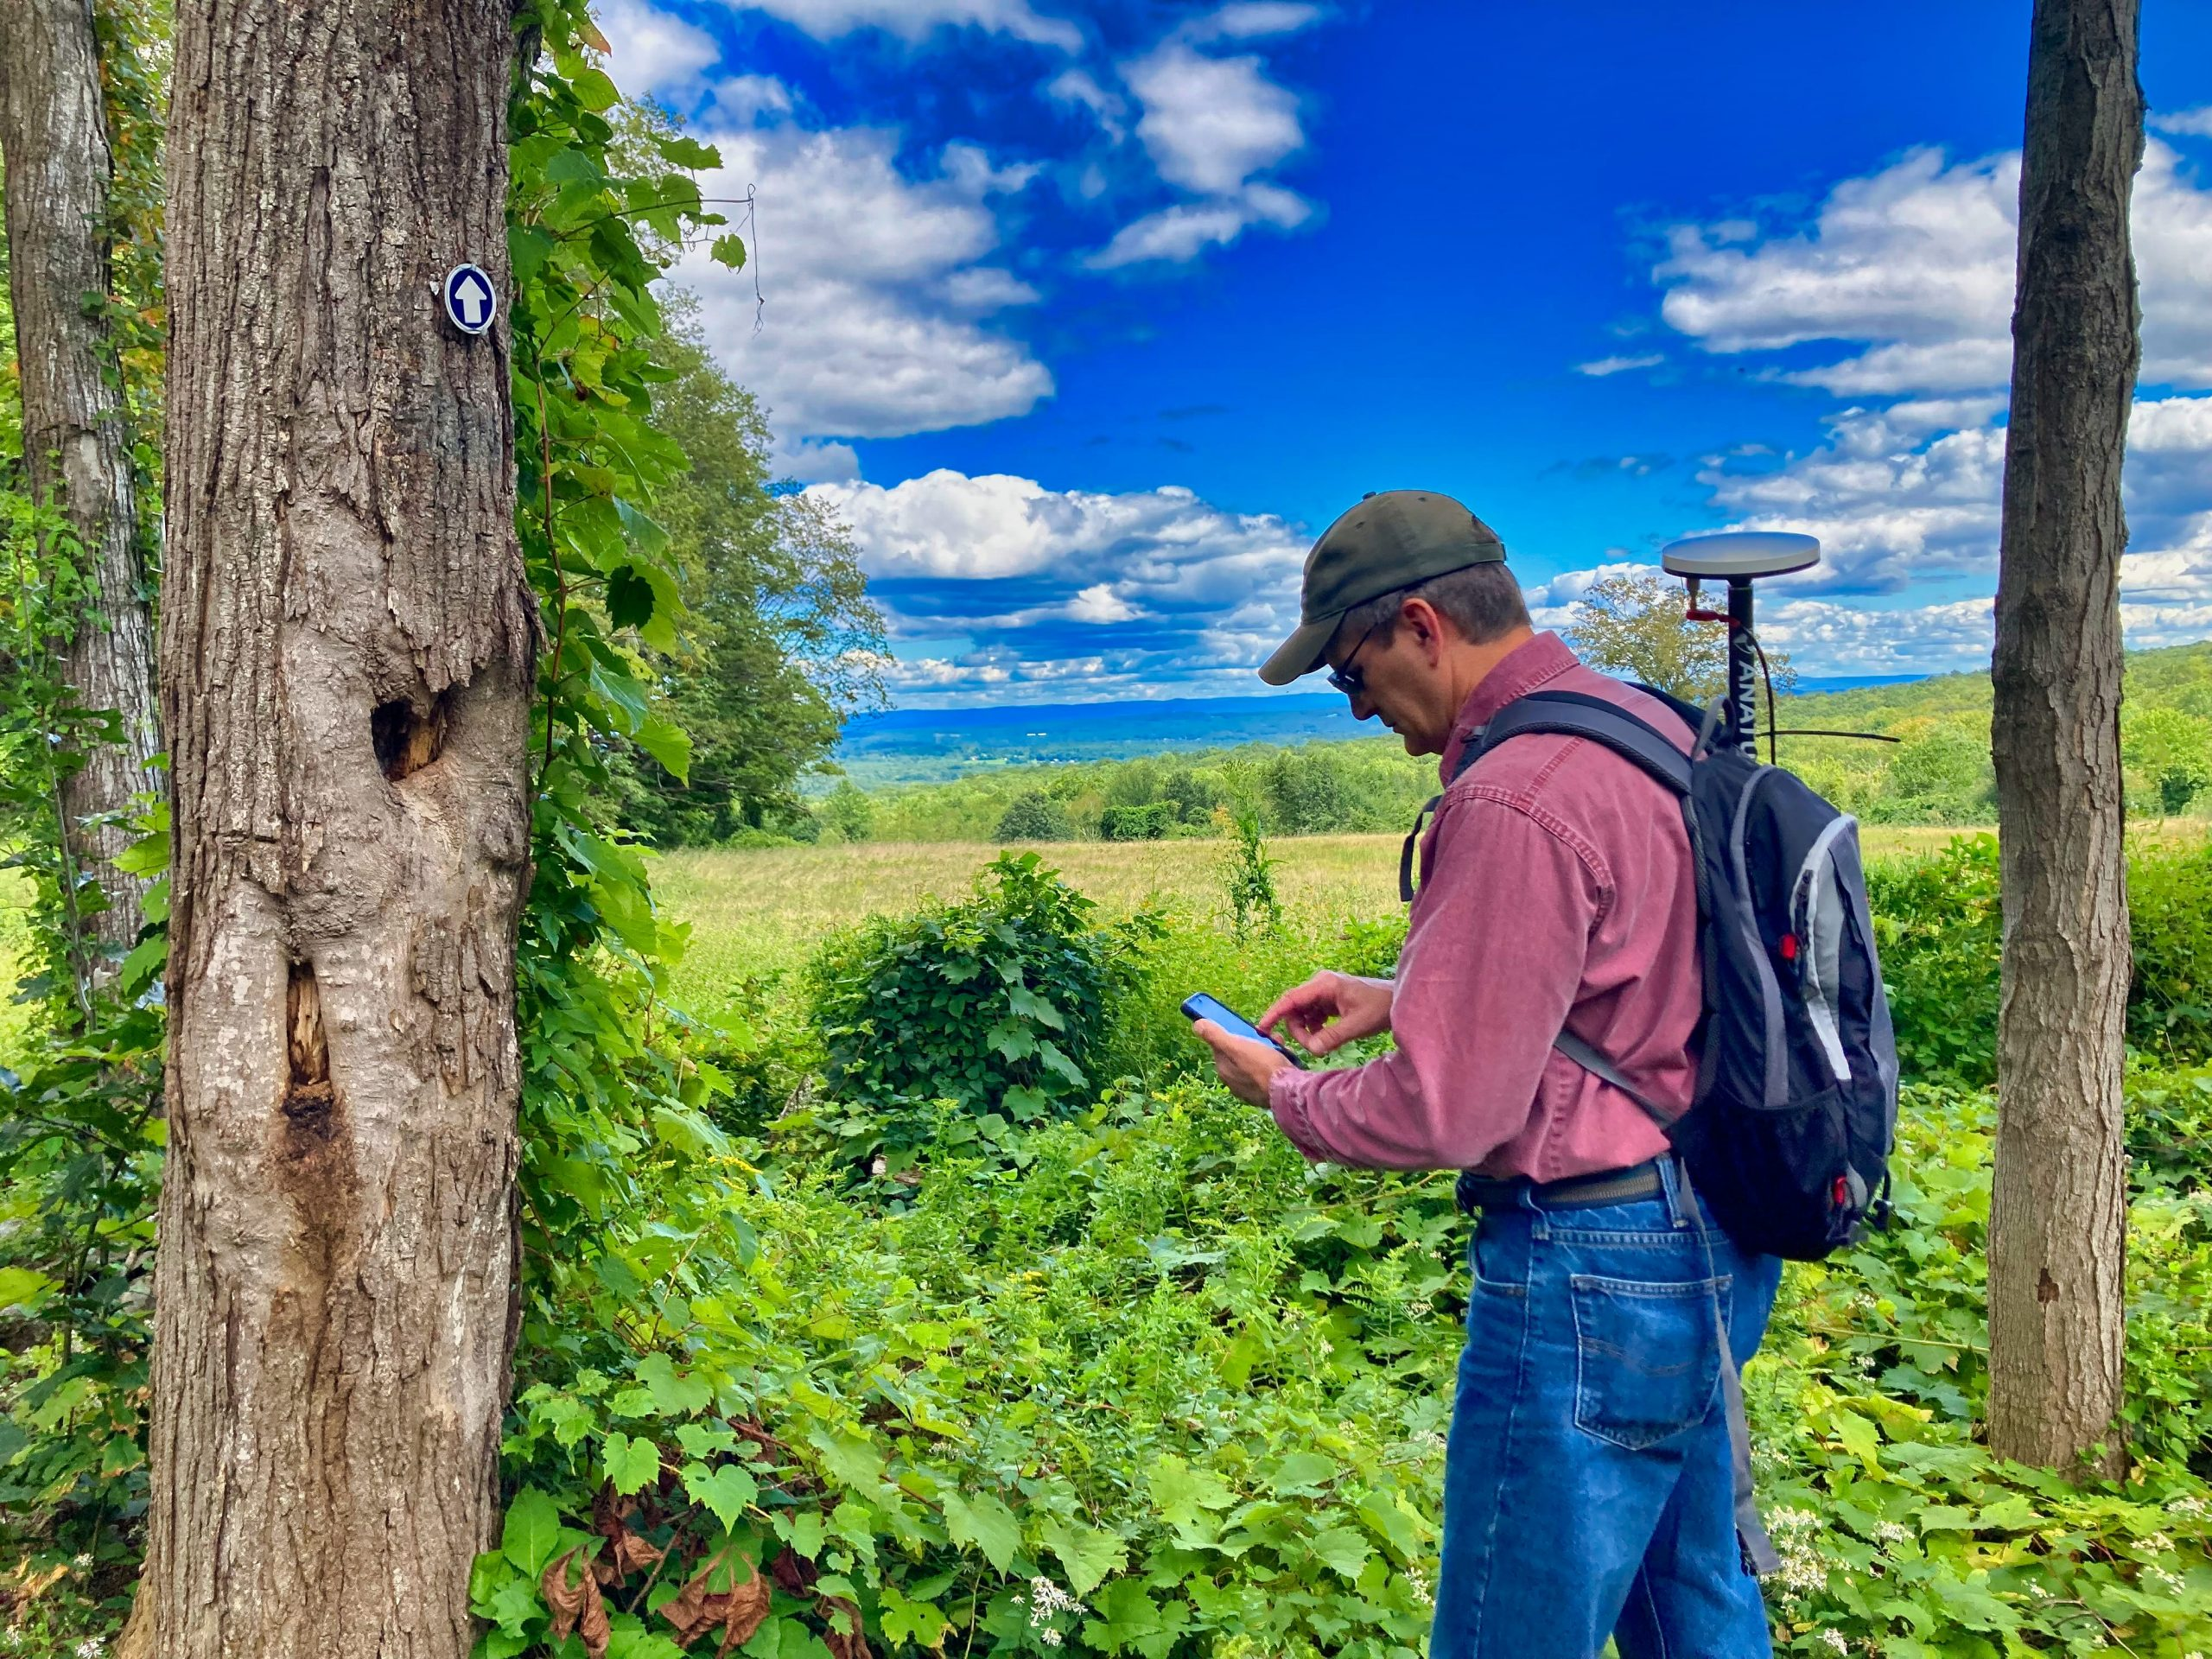 Steve Perry collects high accuracy GNSS GPS data in the field for a land trust conservatorory using Esri ArcGIS Field Maps